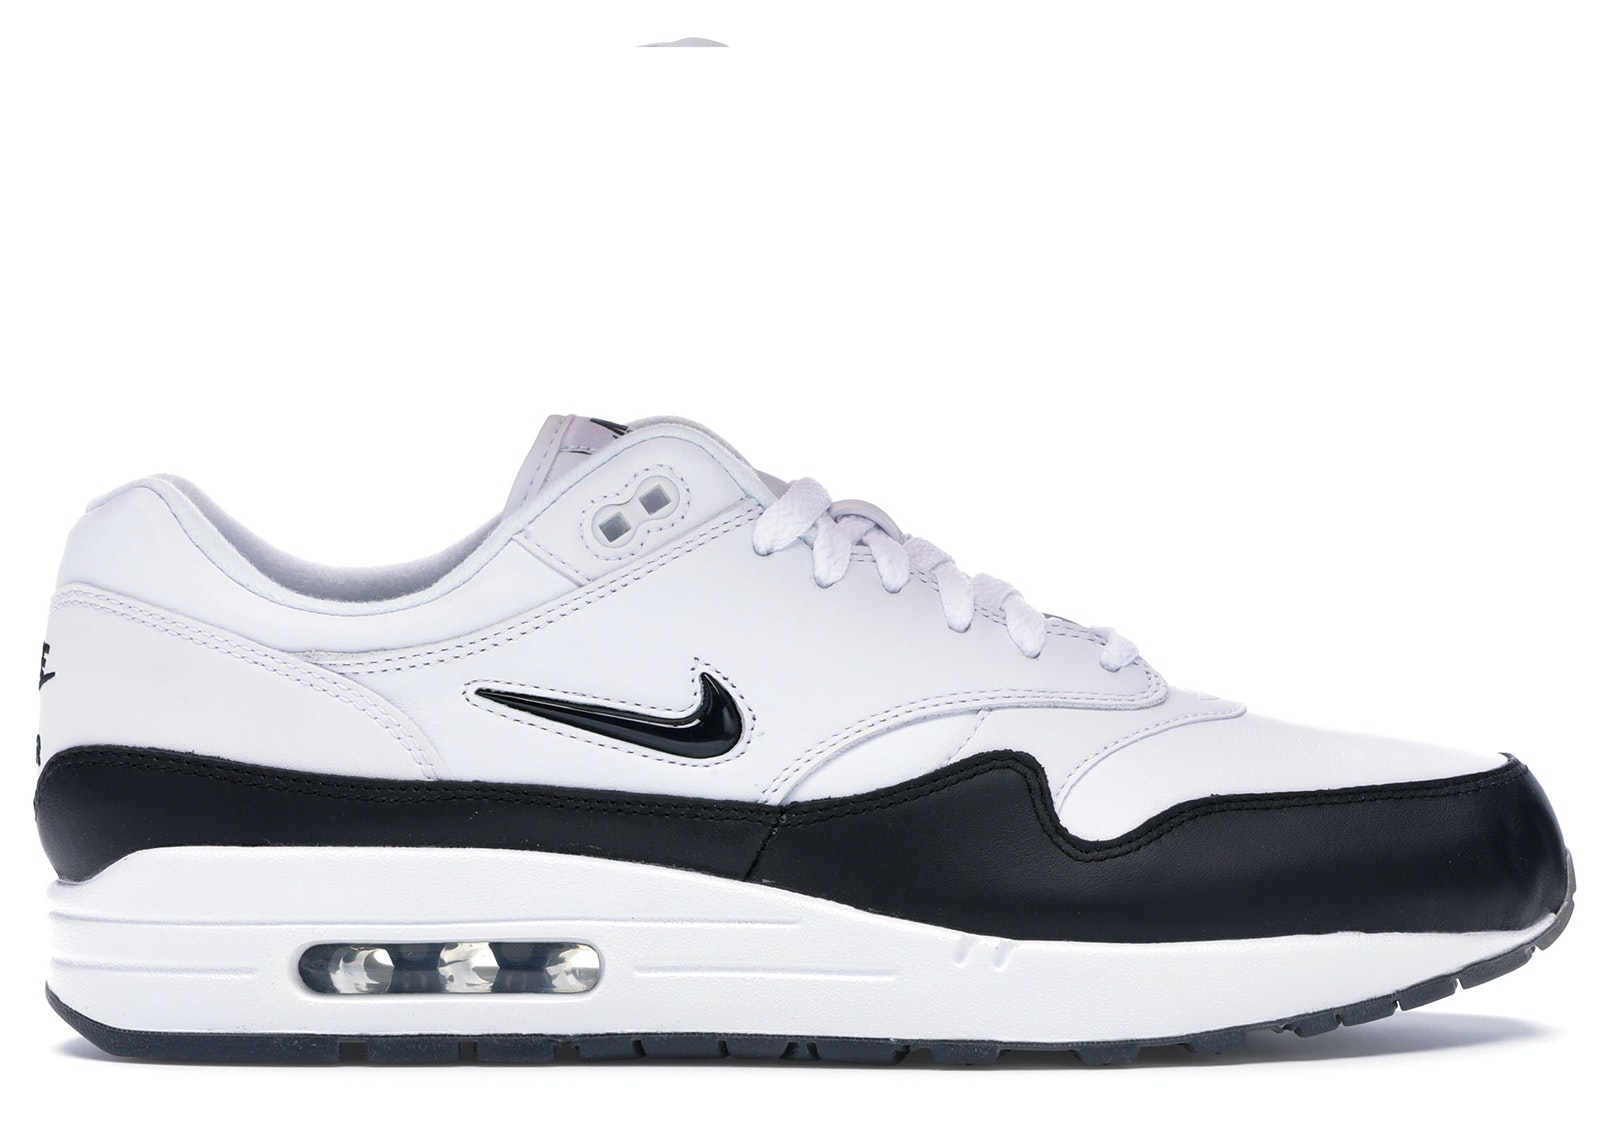 9b351ba5bfdfb0 air max 1 jewel white Find great deals on online for nike shox mens 11.